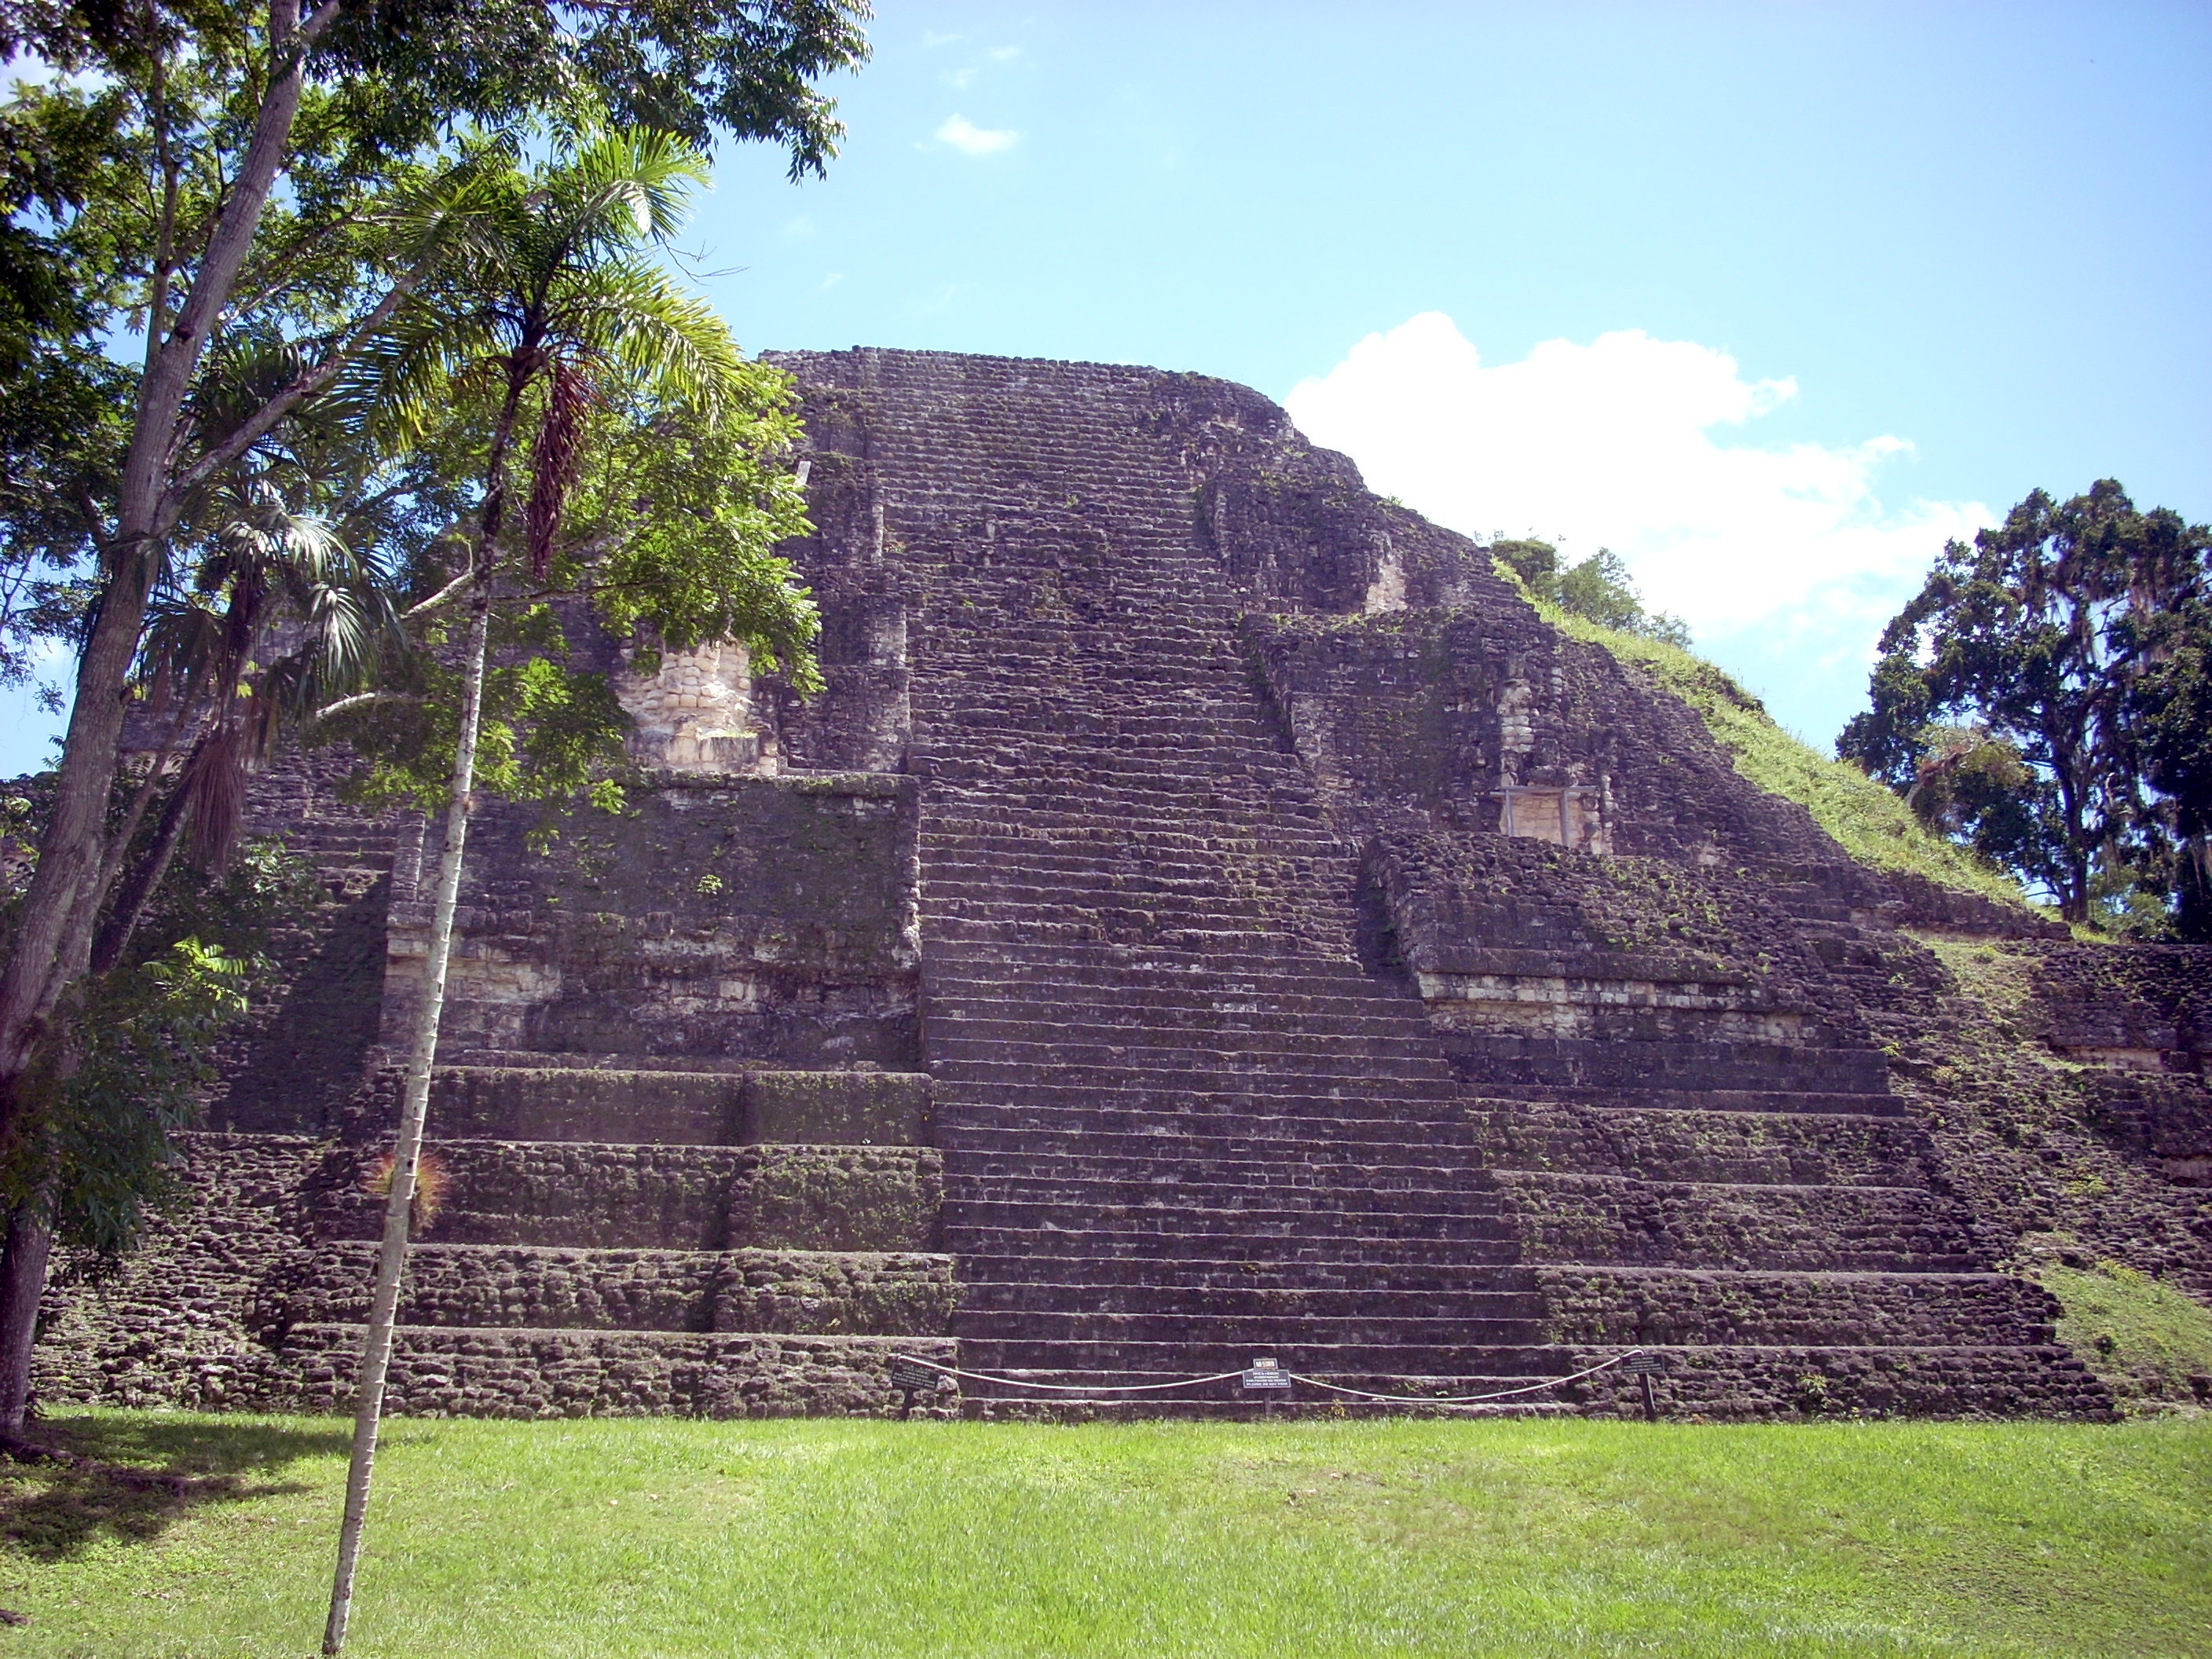 The Lost World Pyramid in the Mundo Perdido complex